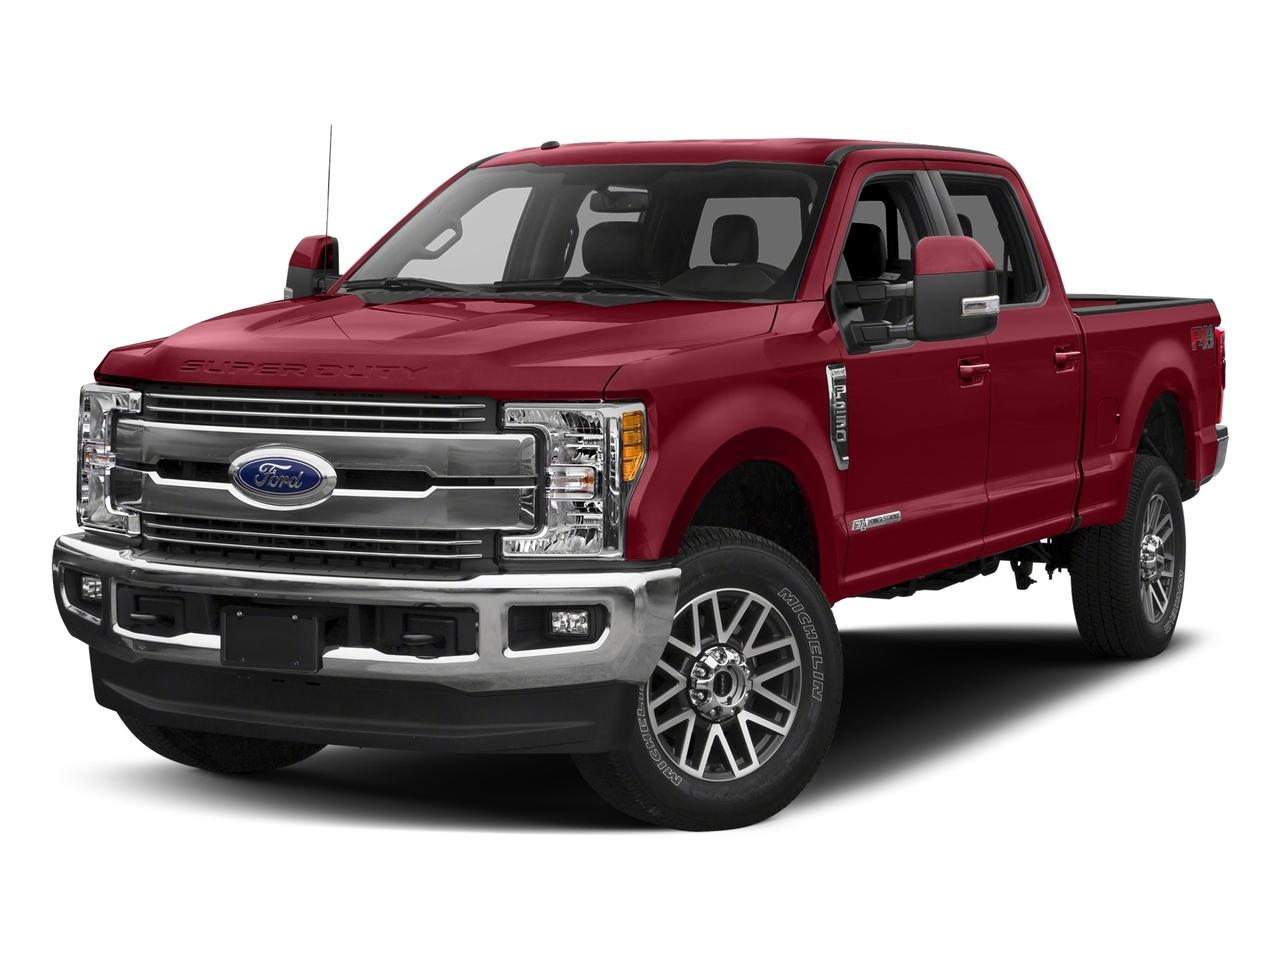 2017 Ford Super Duty F-250 SRW Vehicle Photo in Colorado Springs, CO 80920